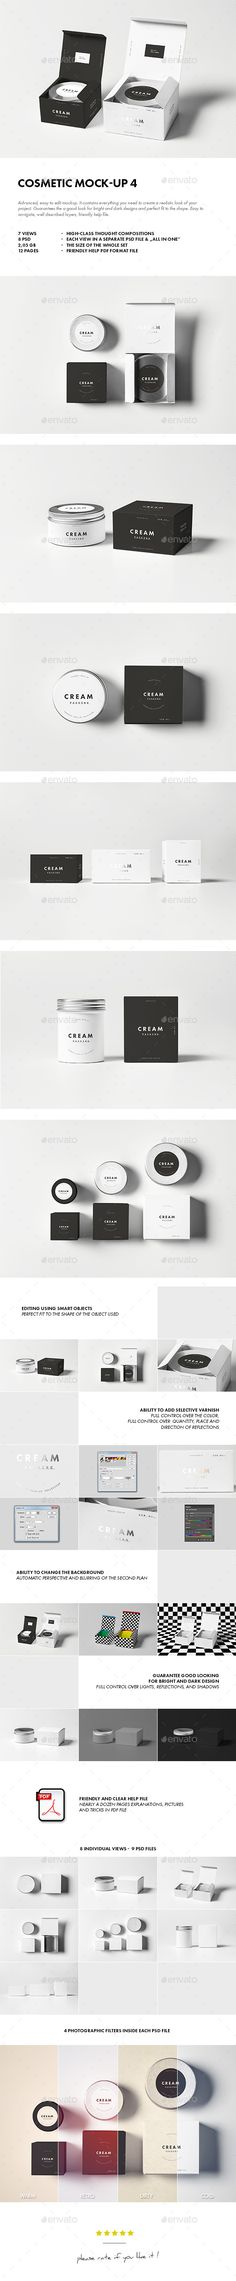 Cosmetic Mock-up #design Download: http://graphicriver.net/item/cosmetic-mockup-4/12021440?ref=ksioks